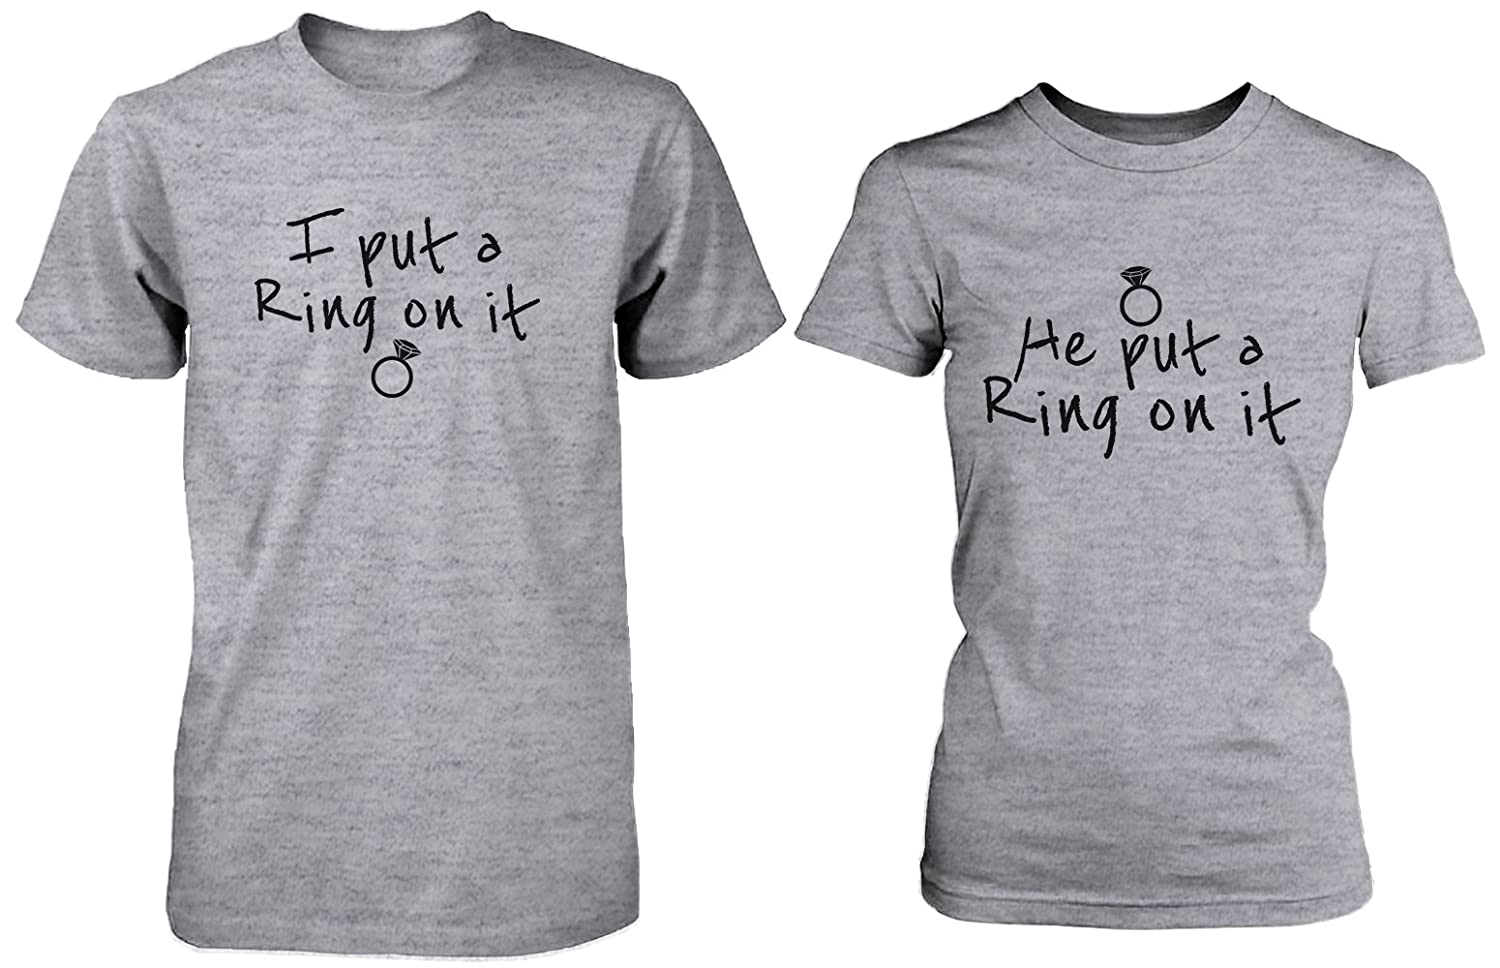 Ring On It Couple Tee His and Hers Wedding Shirts Engagement Matching T-shirts